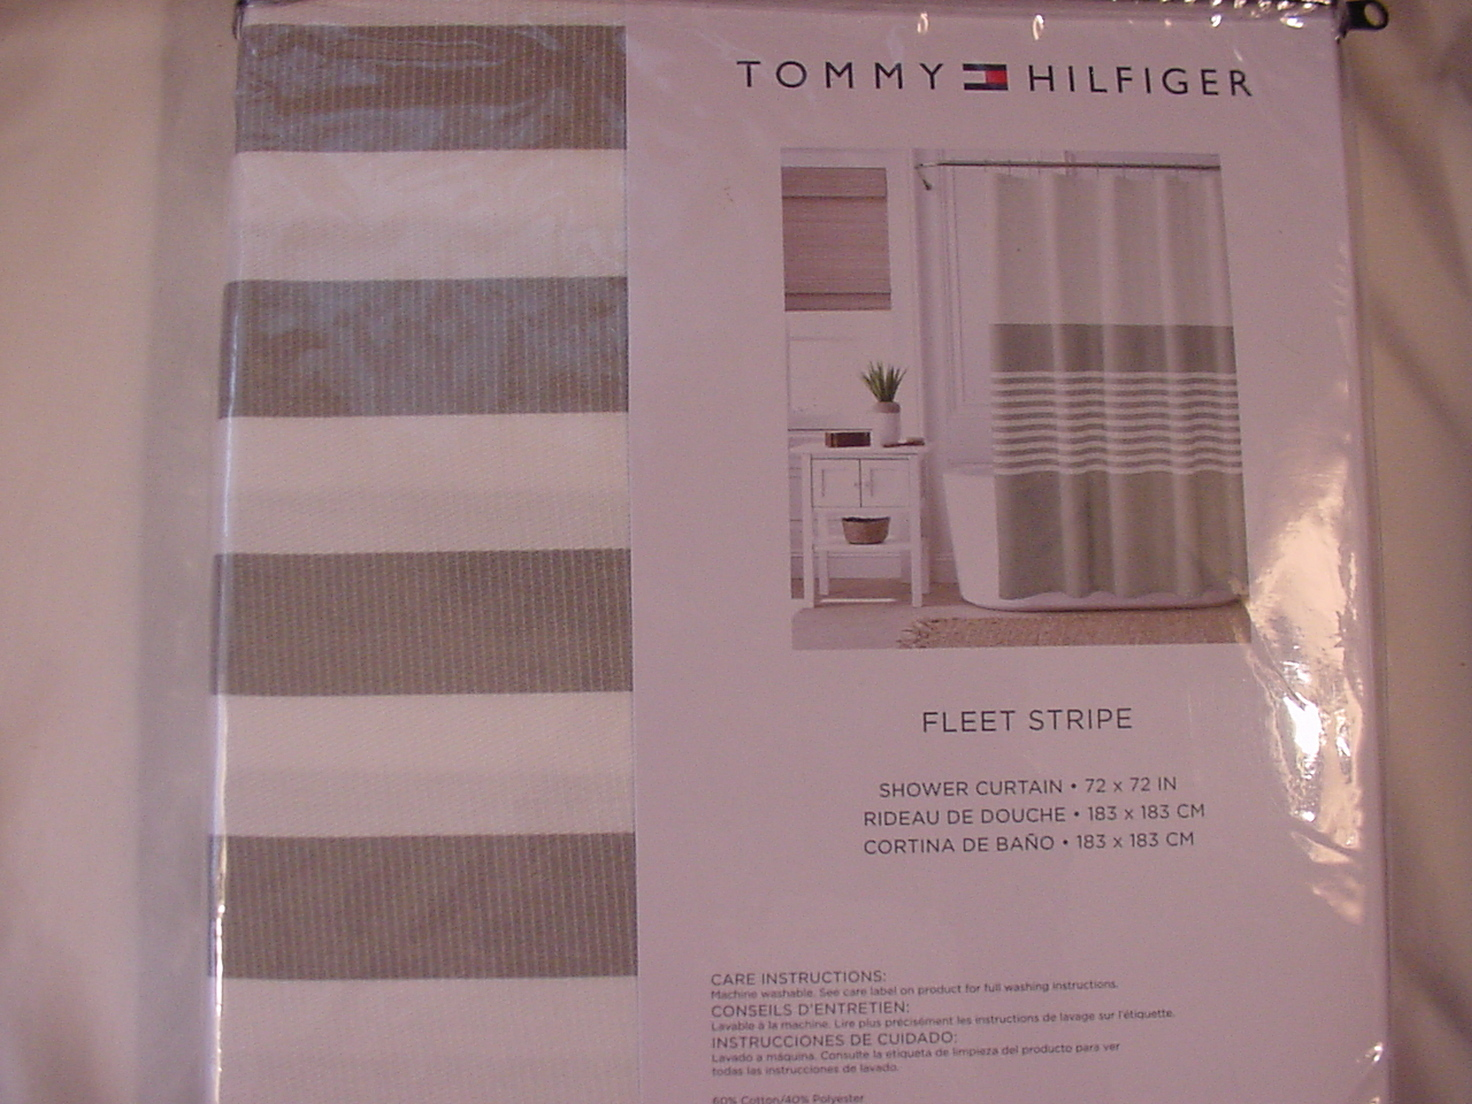 Tommy Hilfiger Fleet Stripe Gray and White Shower Curtain